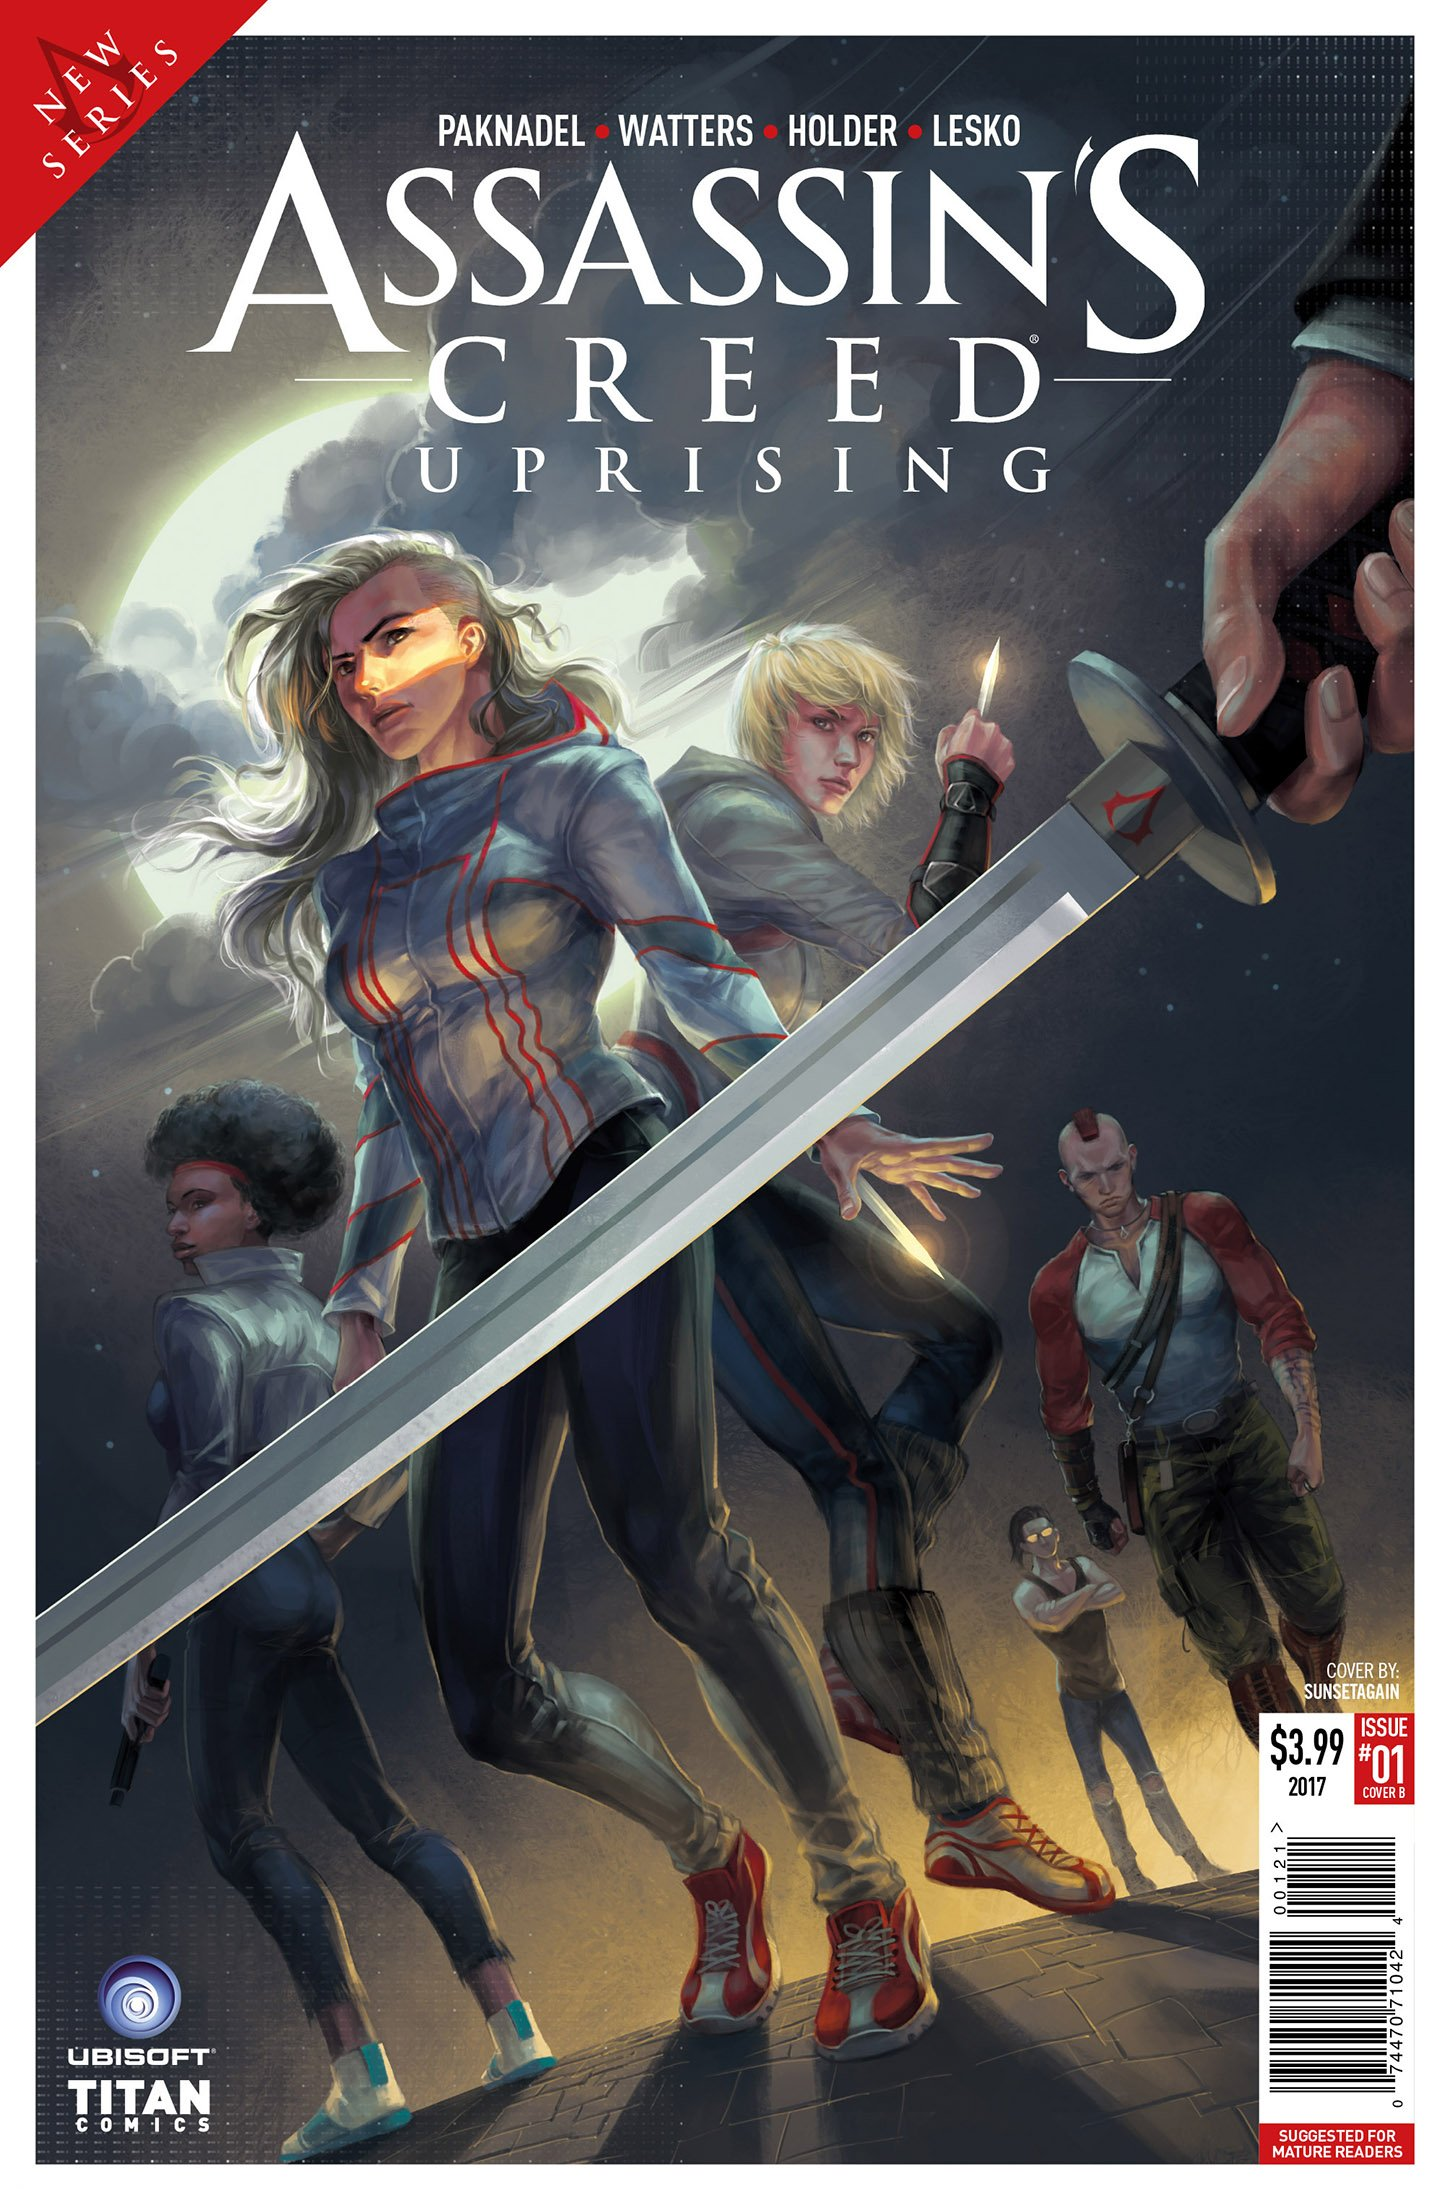 Assassin's Creed - Uprising 01 (February 2017) (cover b)